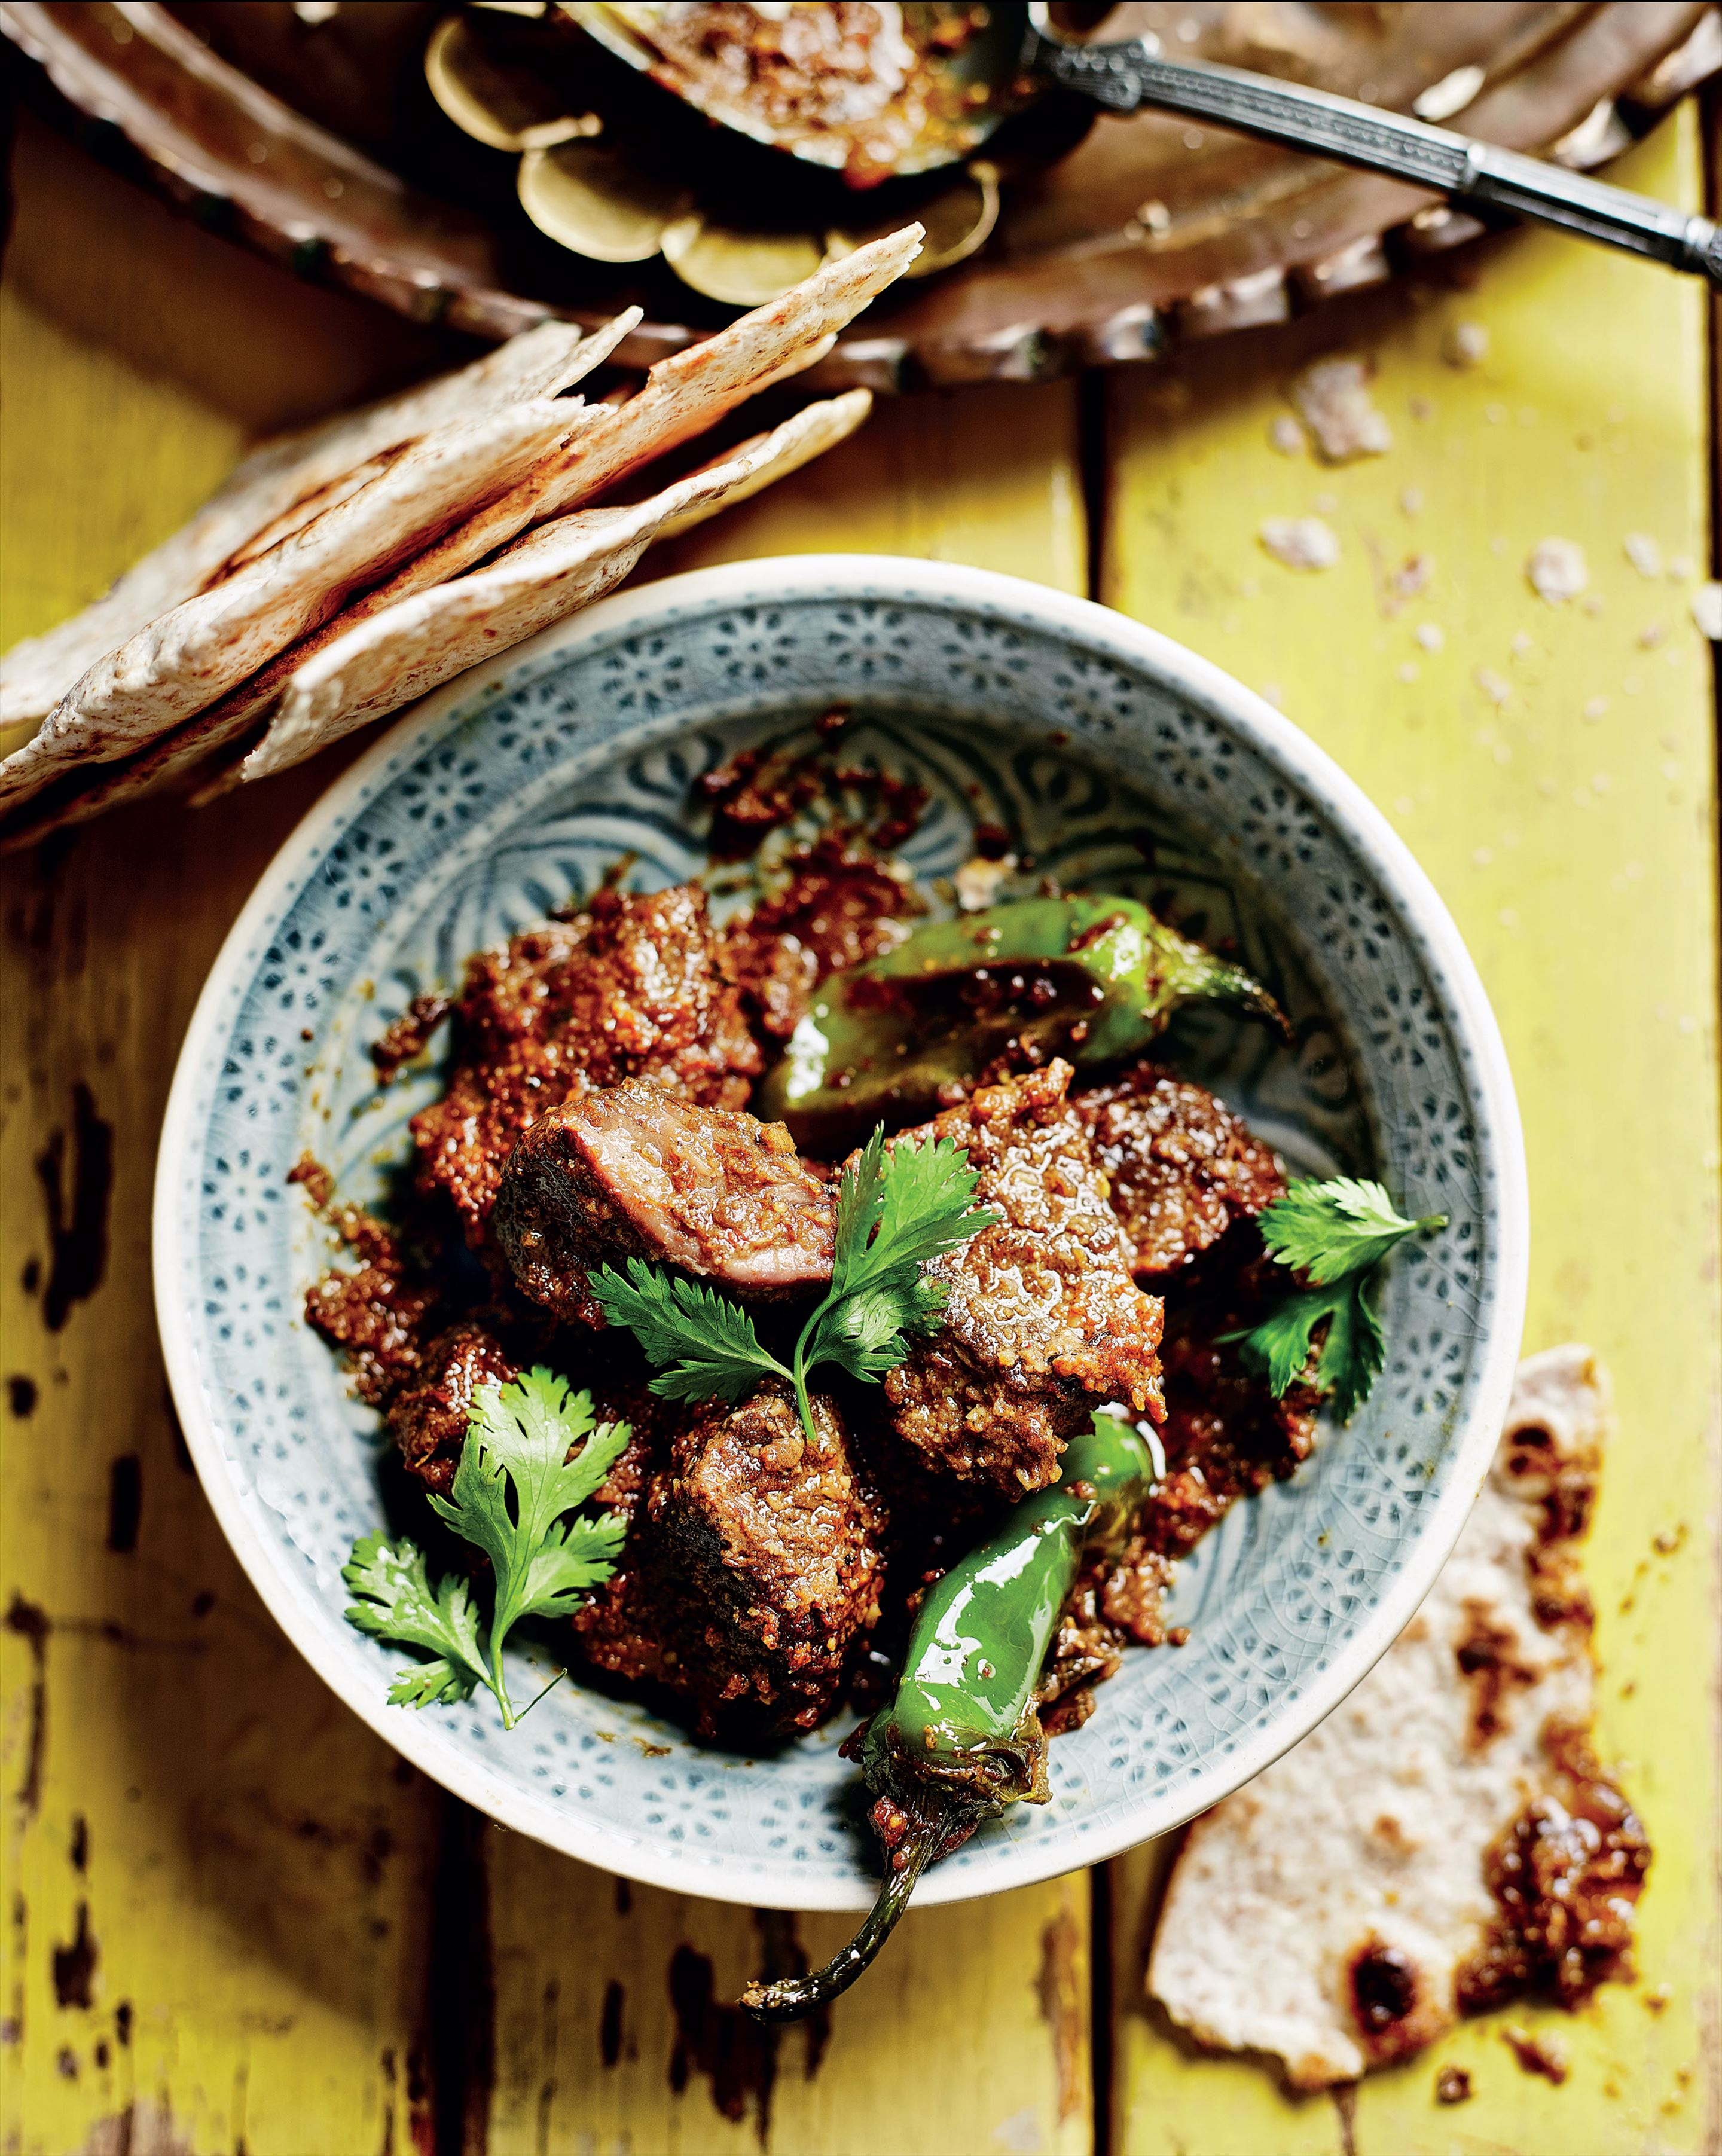 Tangy Andhra lamb with fat green chillies